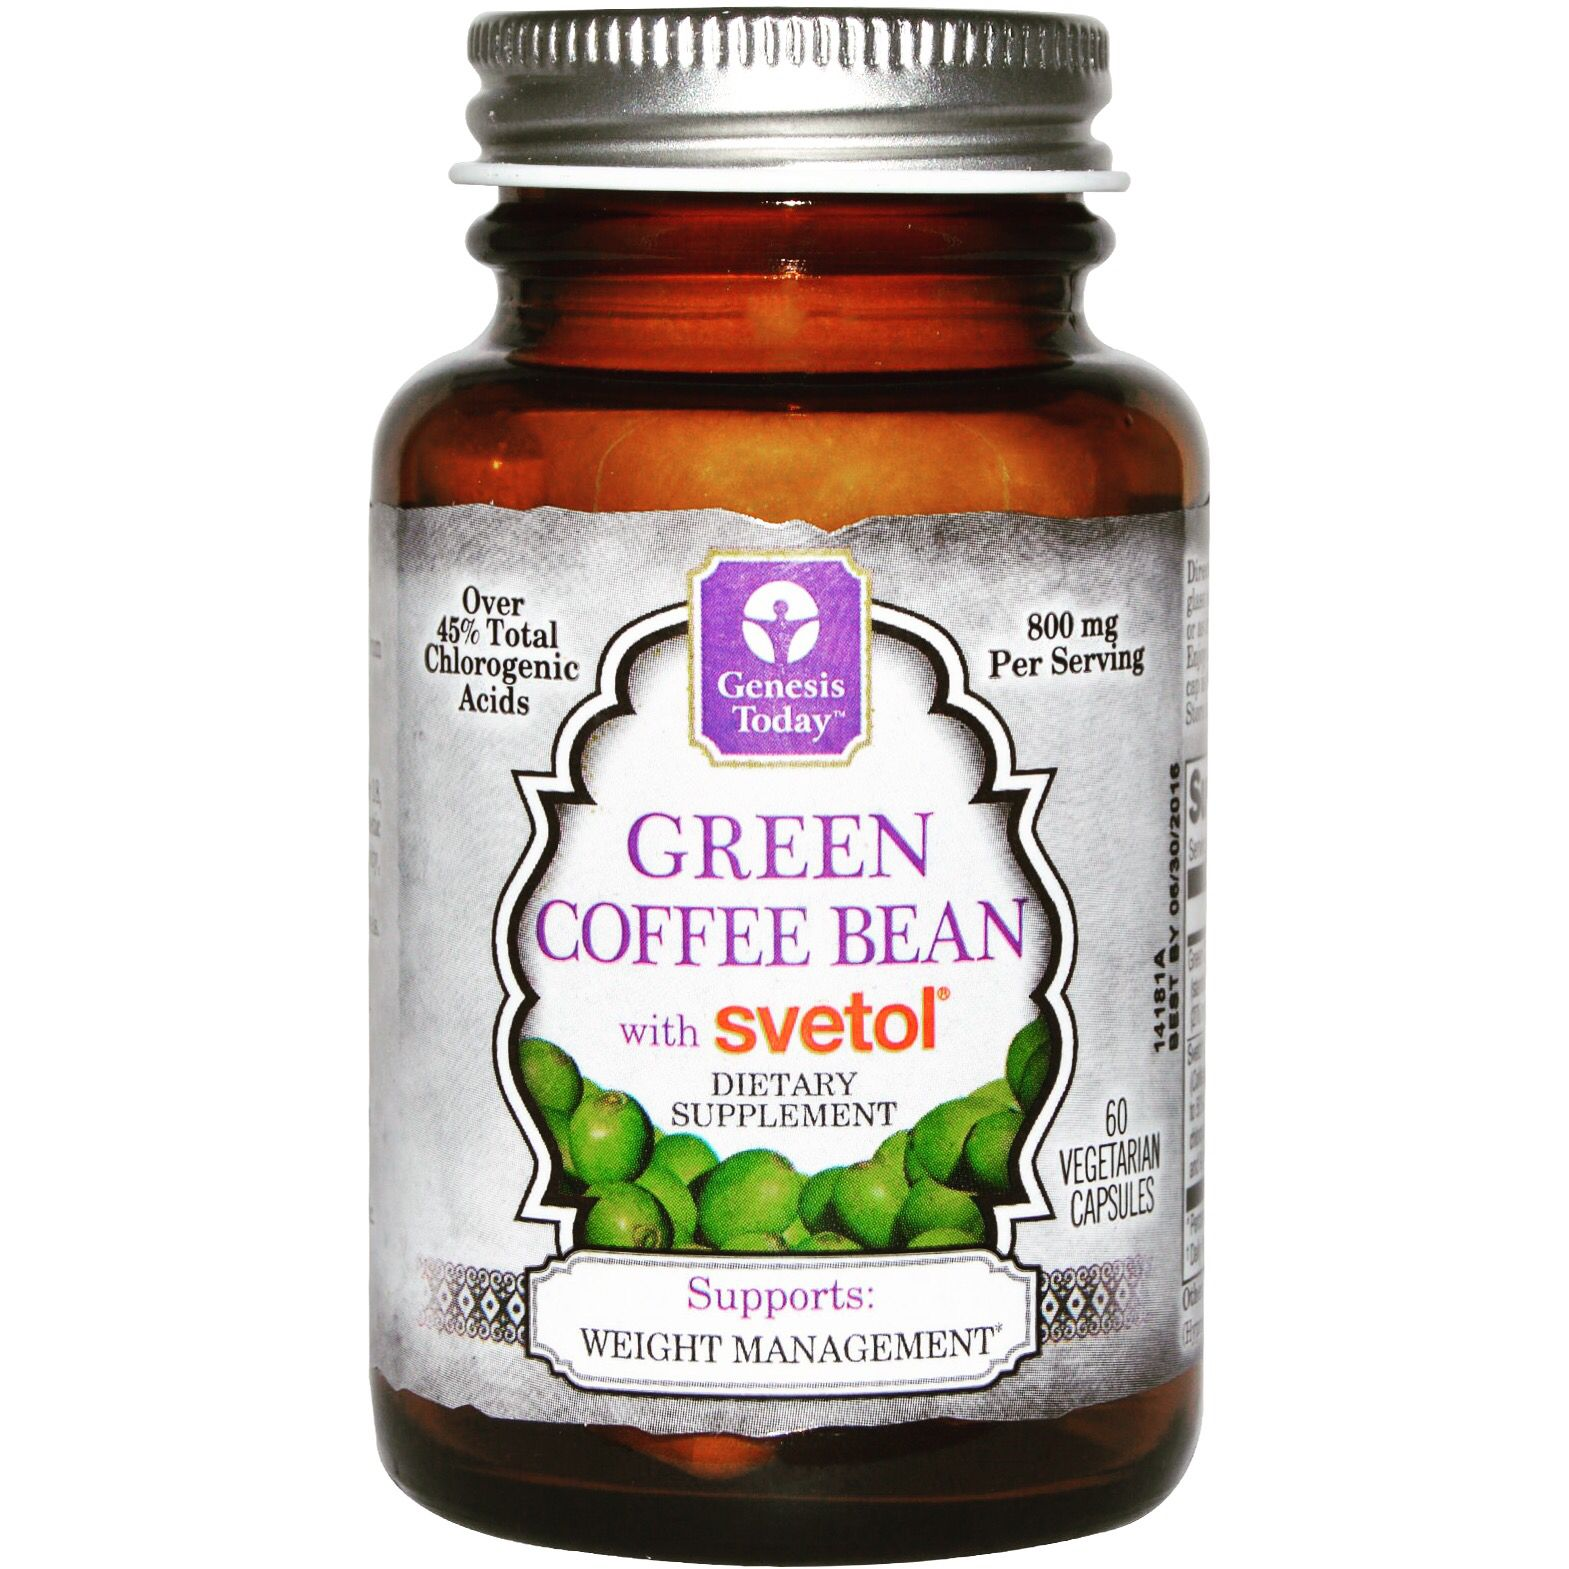 Green coffee bean extract and dietary supplements with